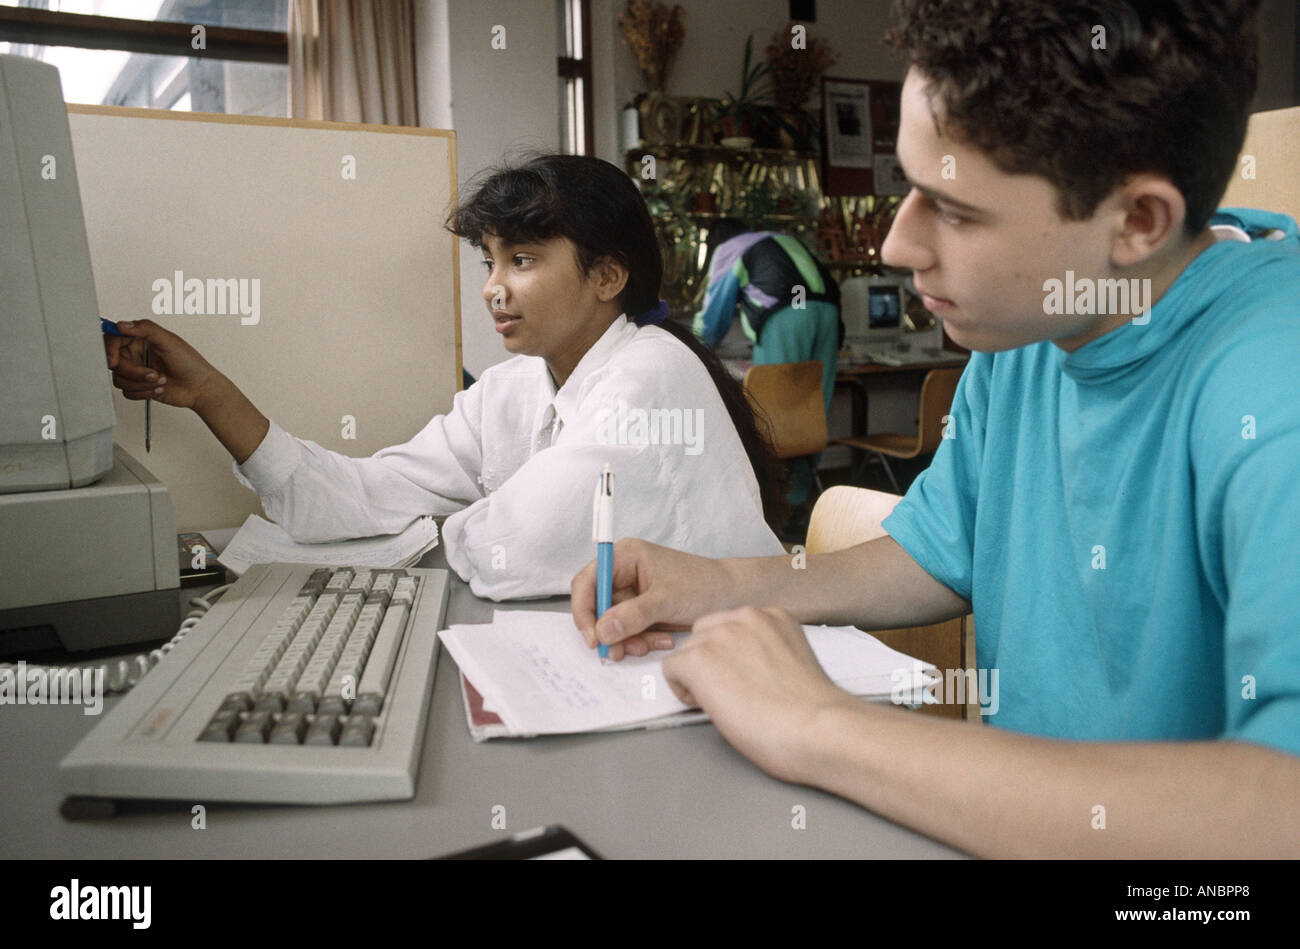 secondary school children on computers - Stock Image